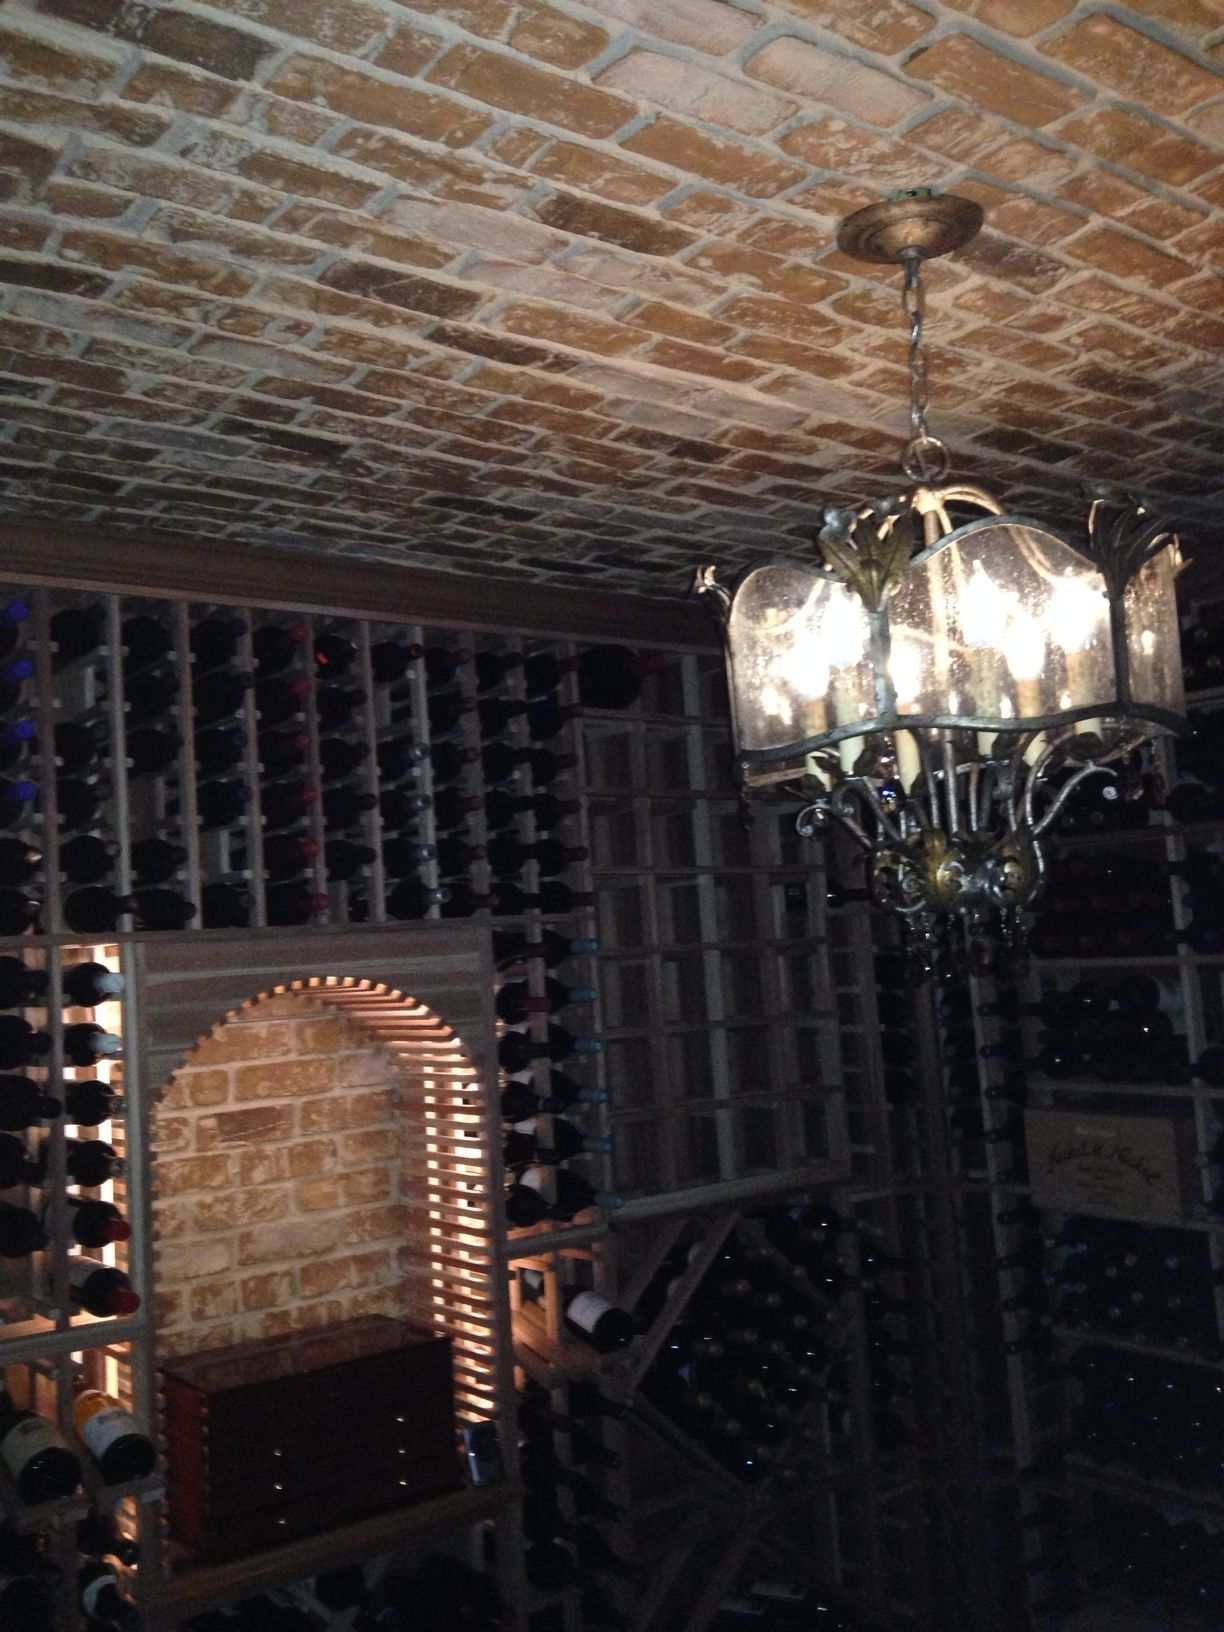 Diy Wine Cellar Using Used Brick Panels From Fauxstonesheetscom Basement